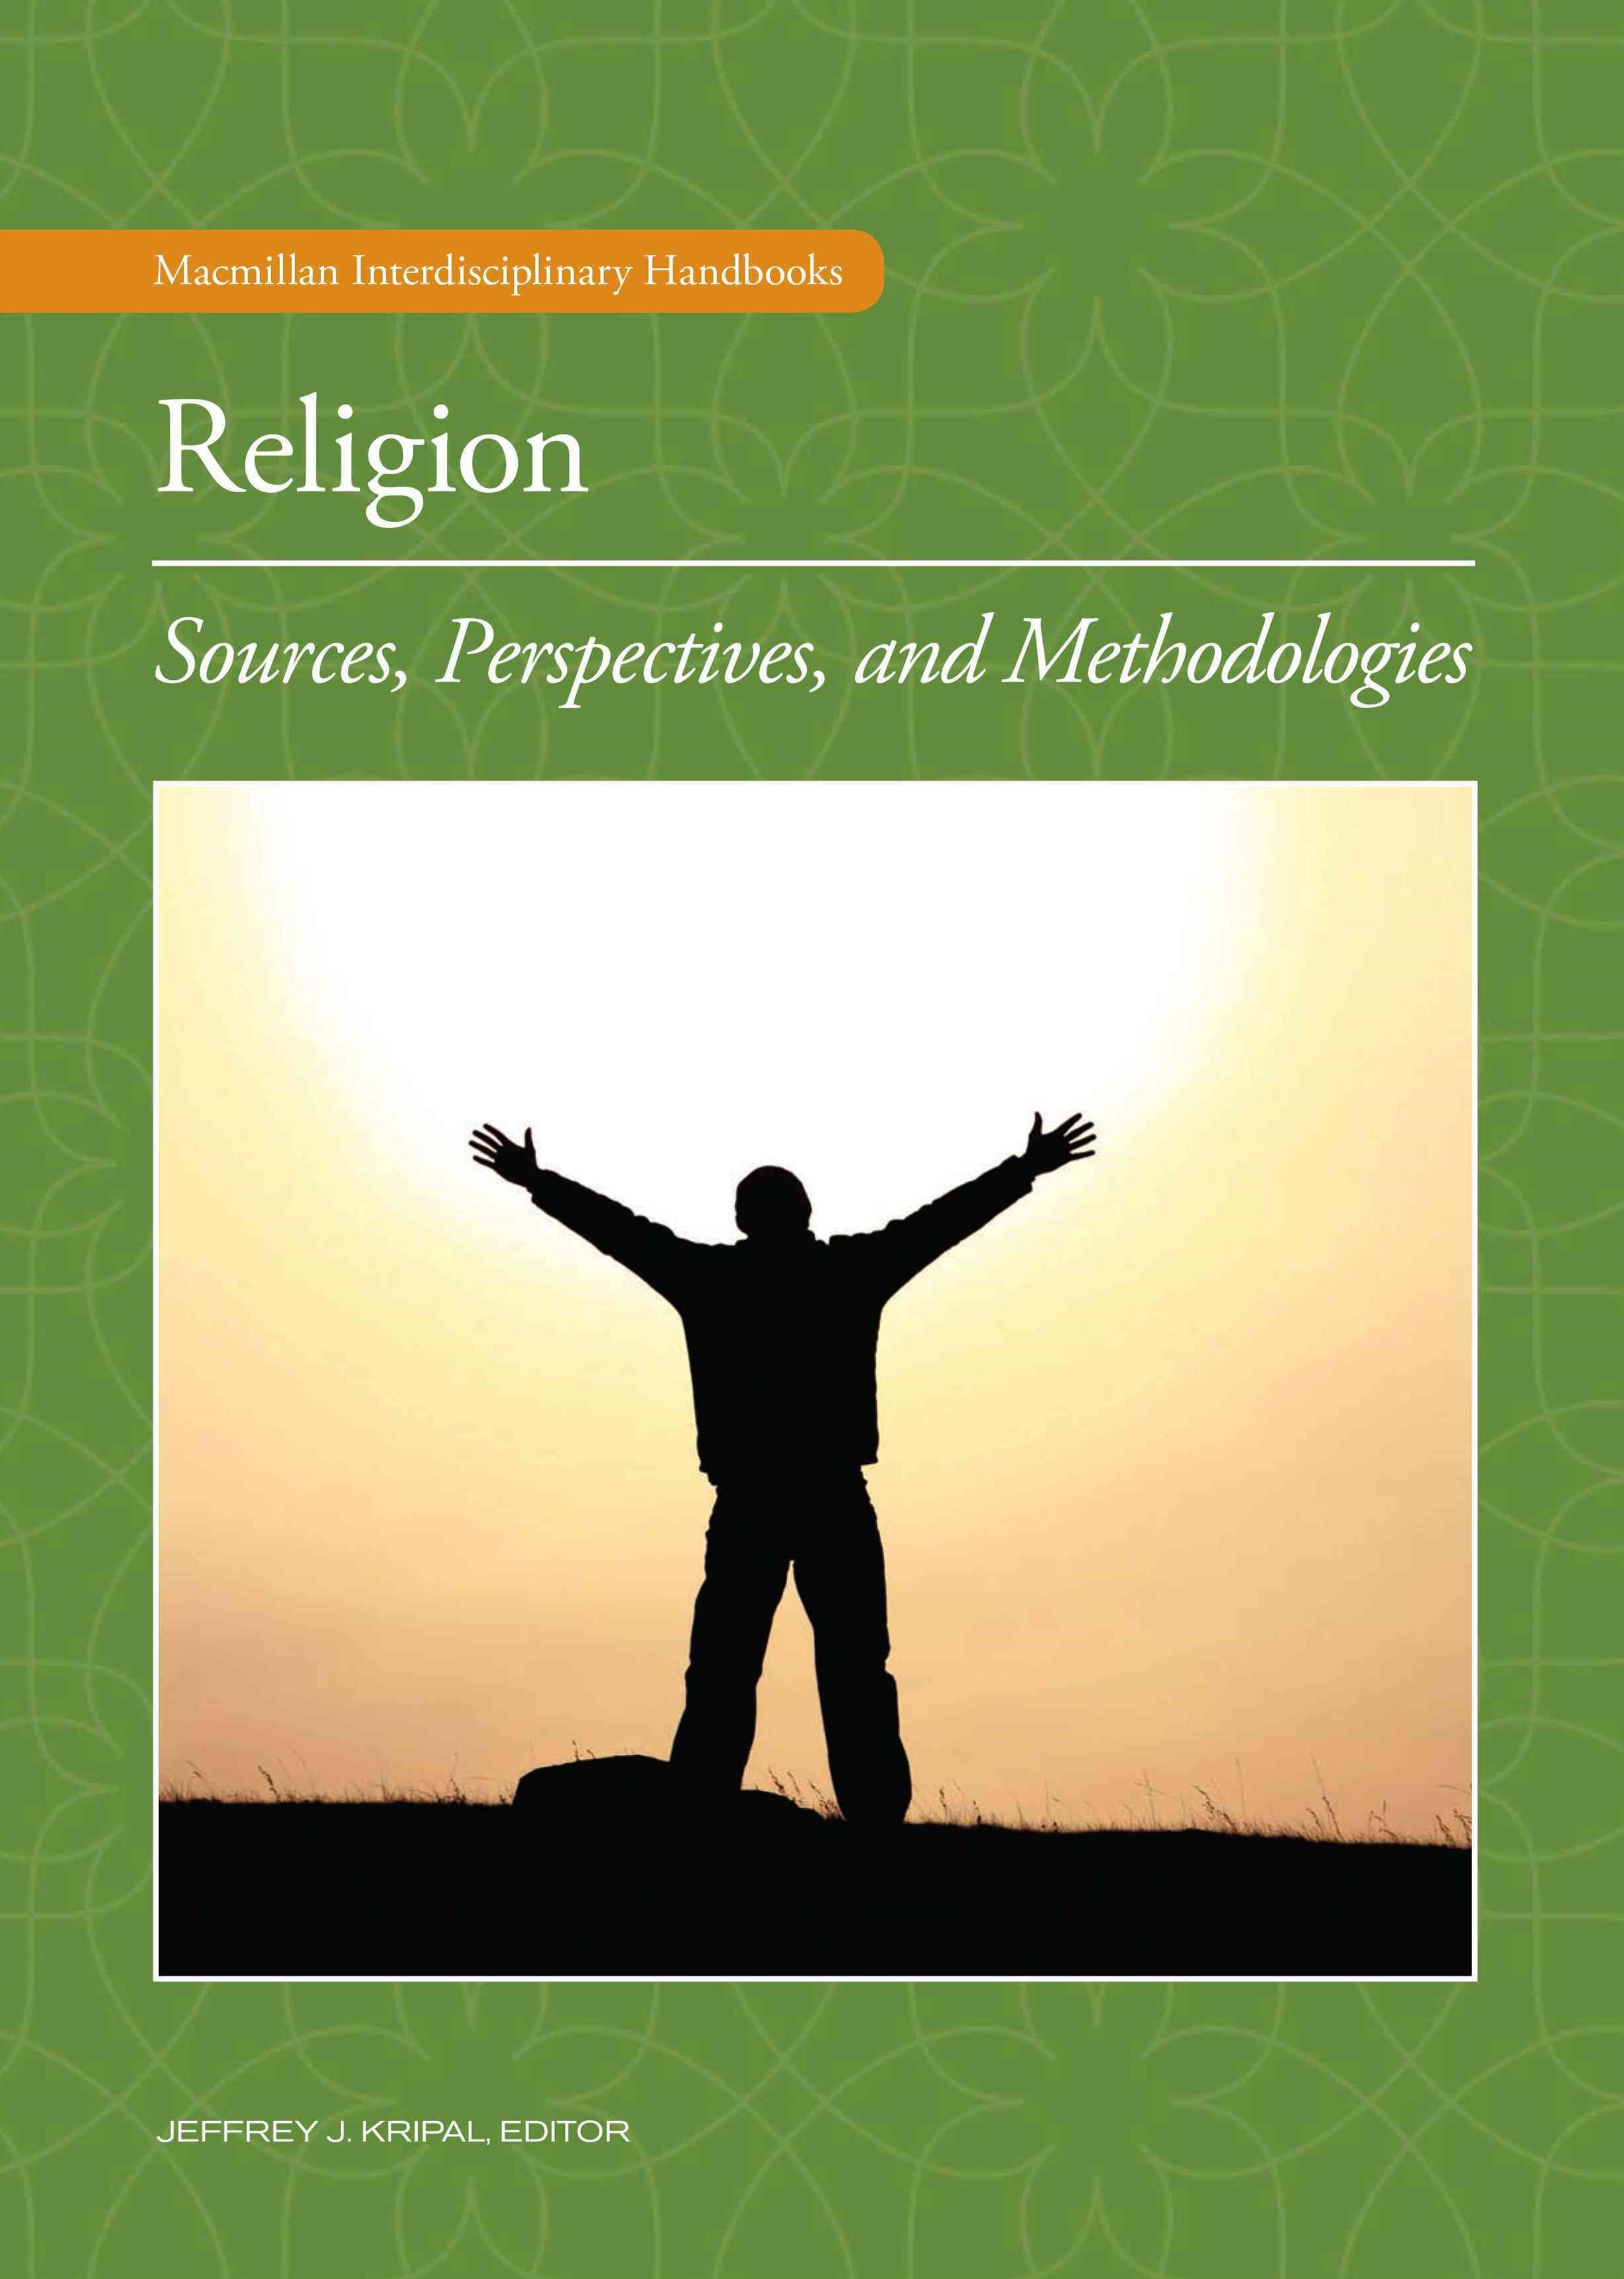 Religious Studies: Interdisciplinary Research Primer